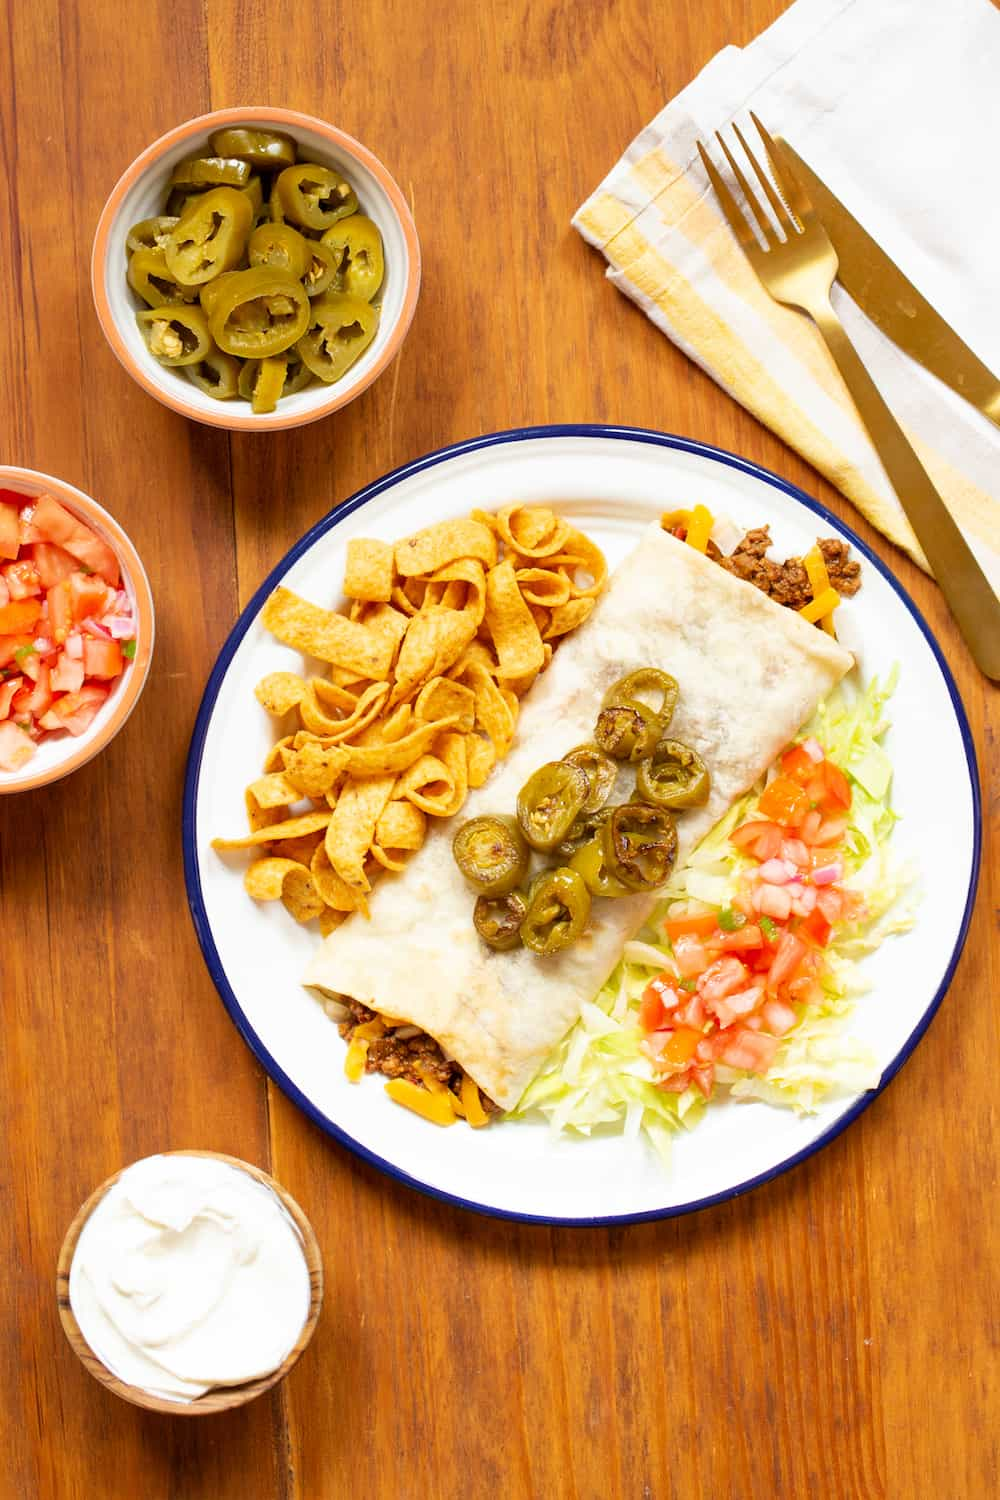 Texas-style chili cheese burrito